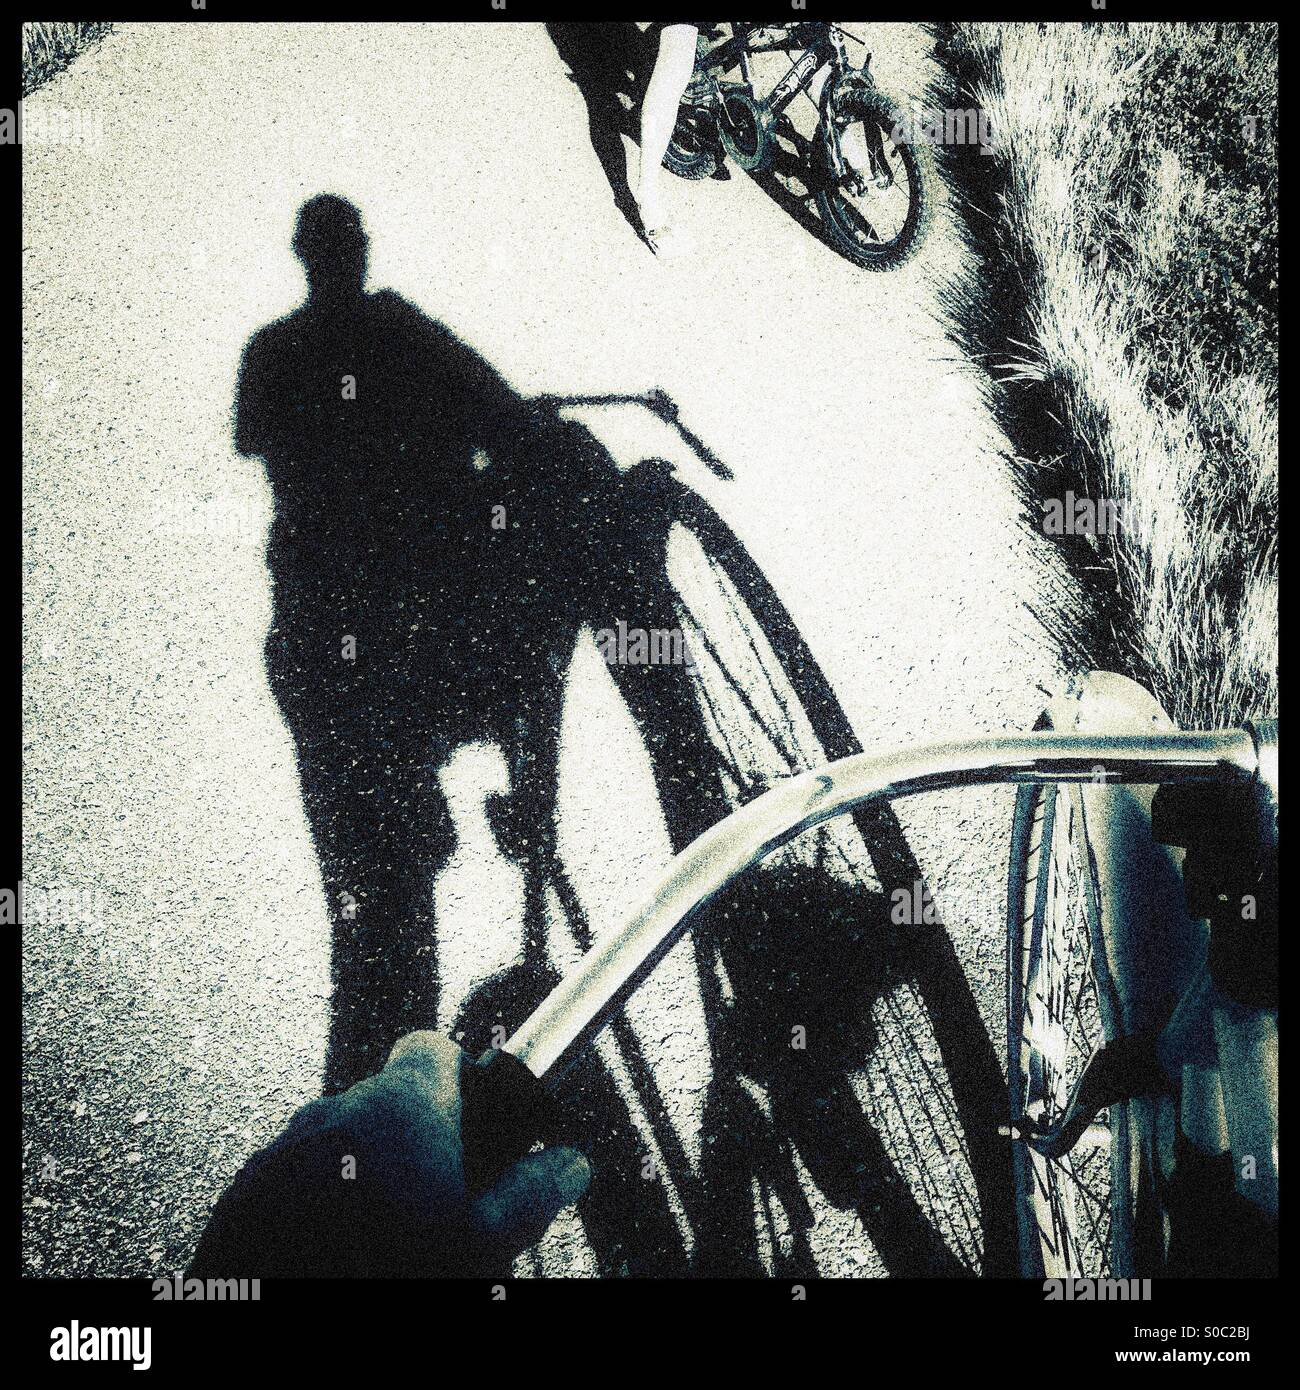 A shadow of a bike rider on a bike path talking to a child riding a bike. - Stock Image